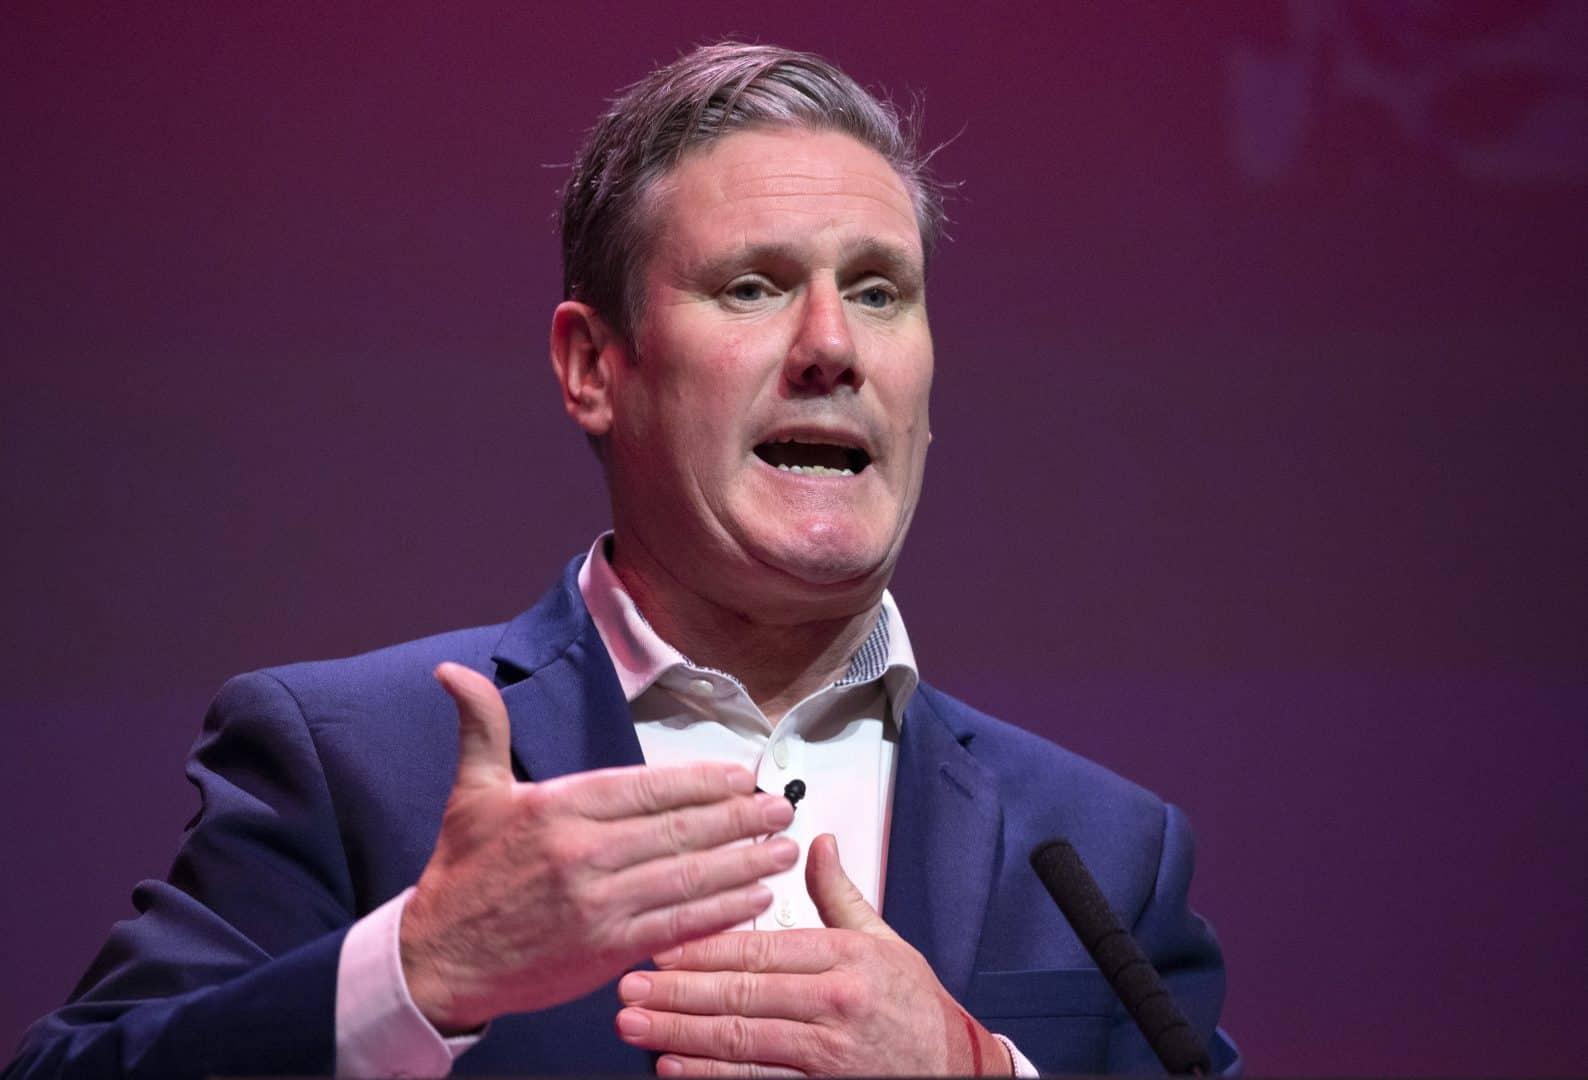 Kier Starmer orders urgent review into leaked antisemitism report